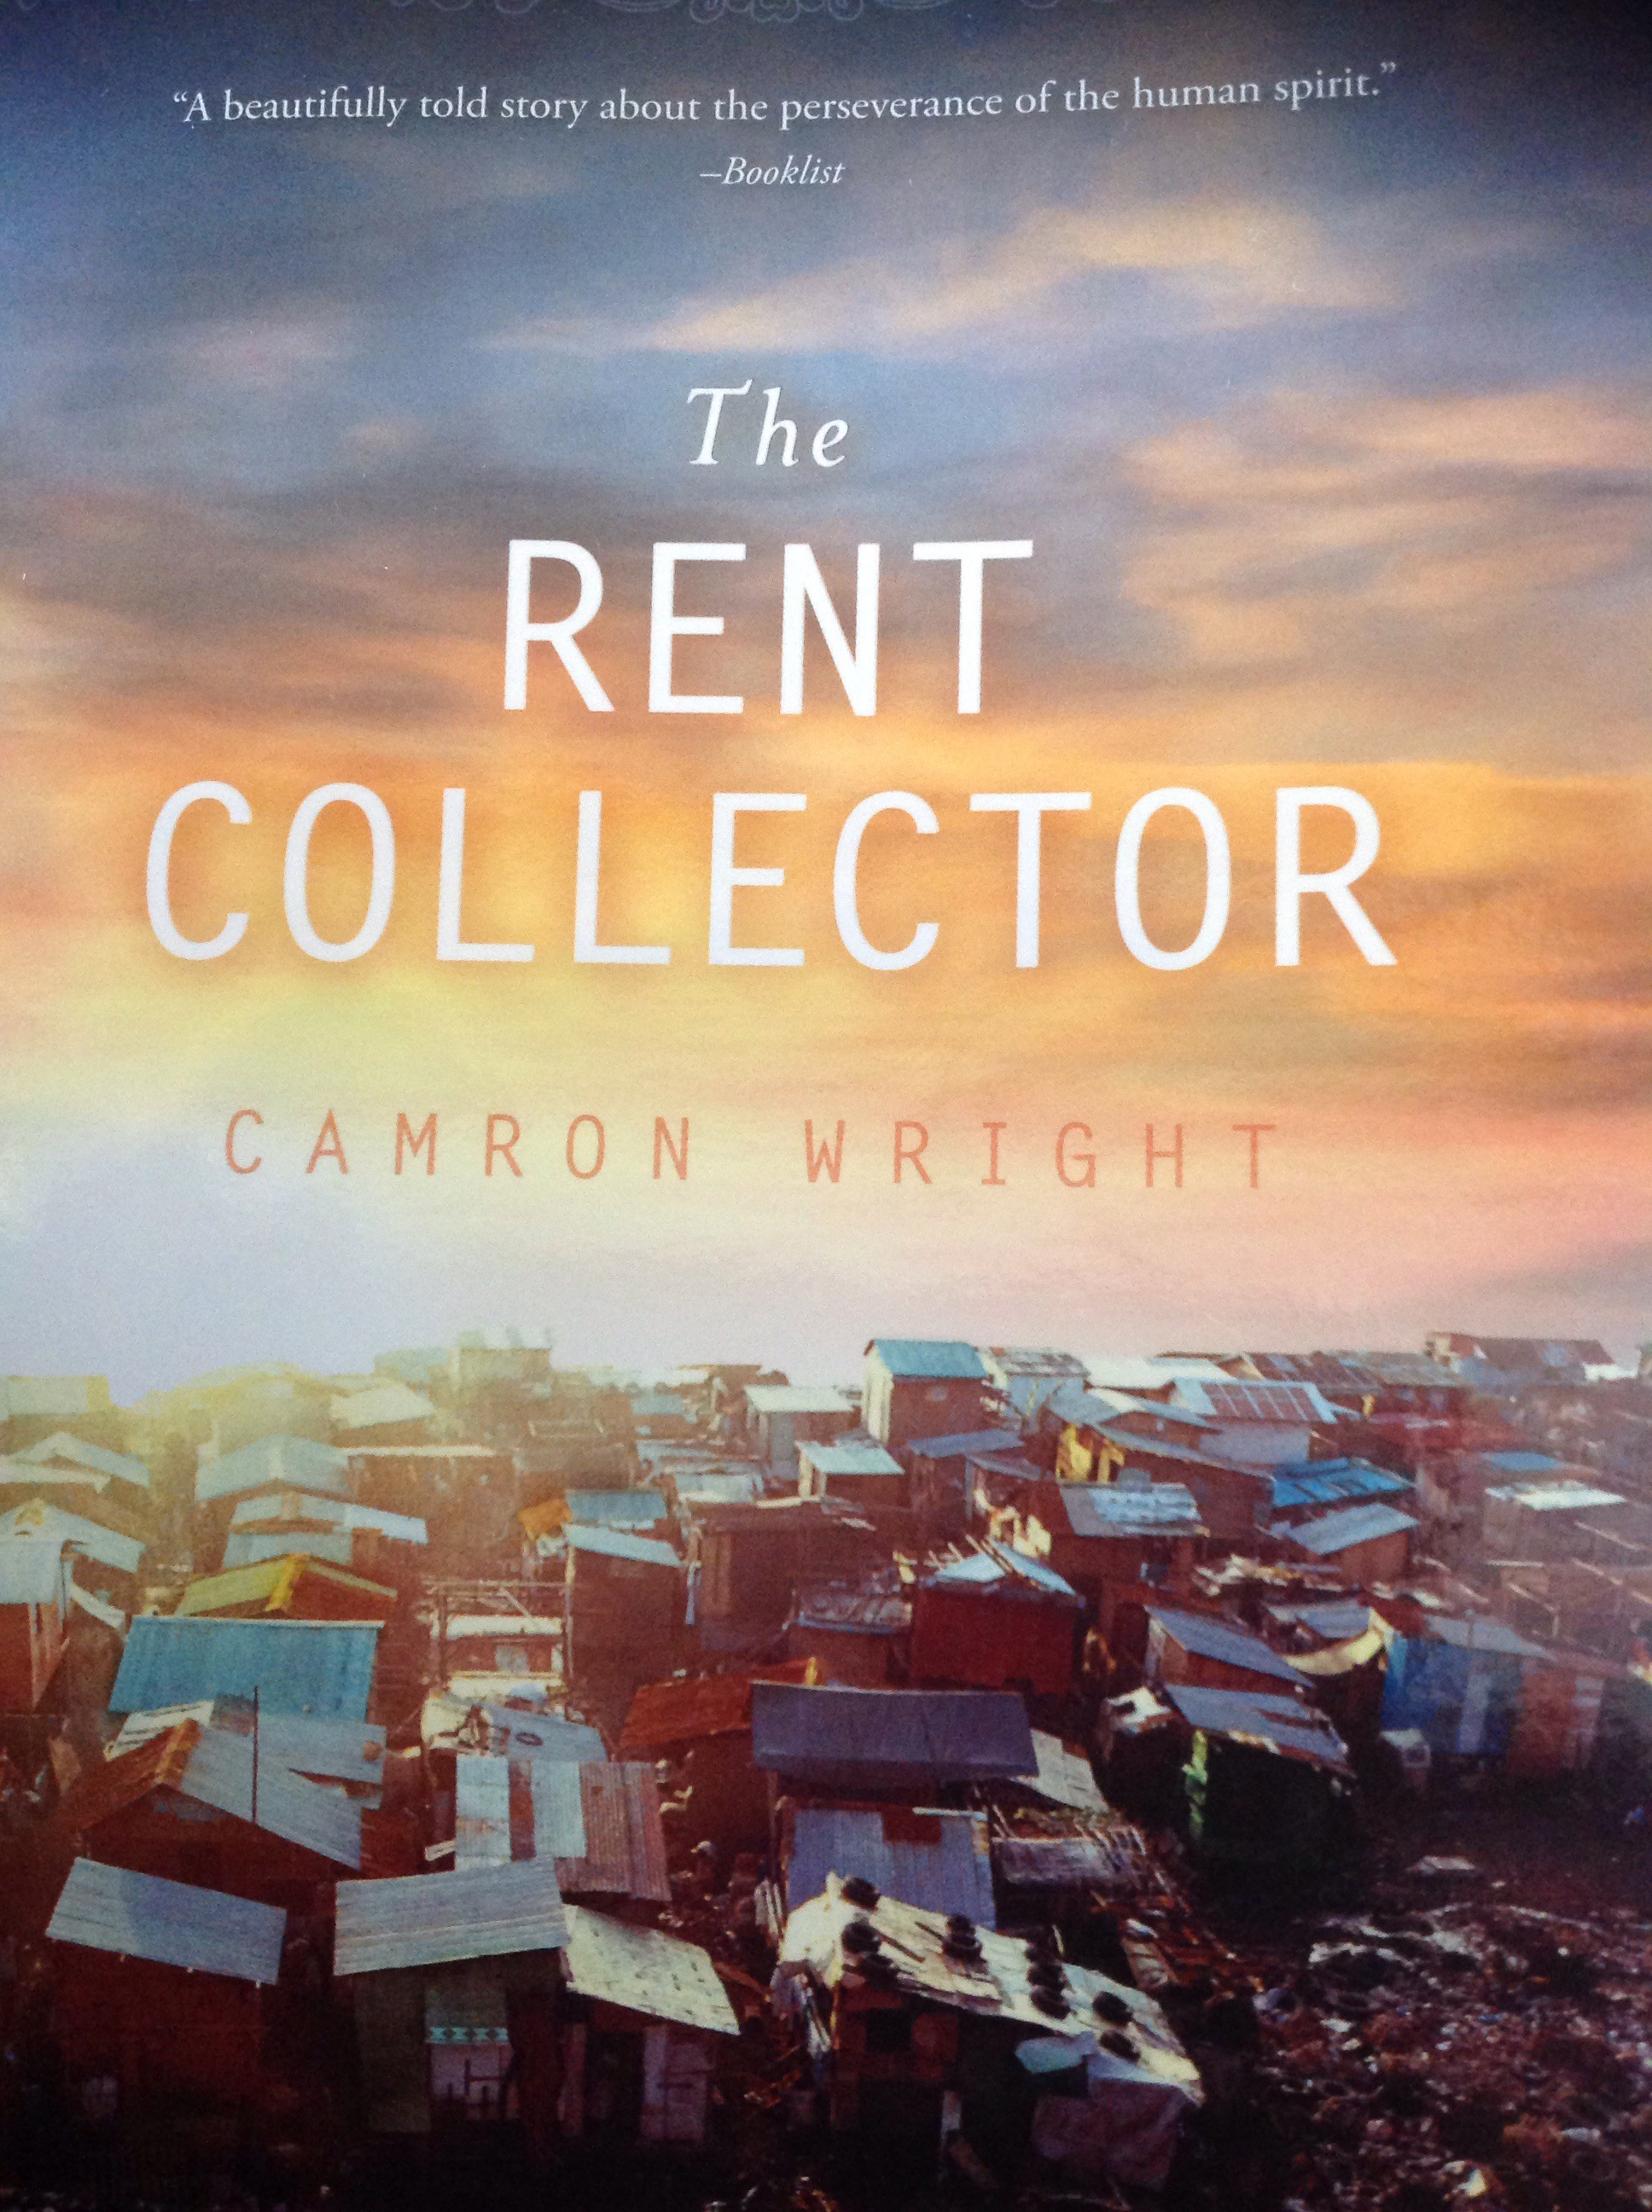 What we're reading:  The Rent Collector